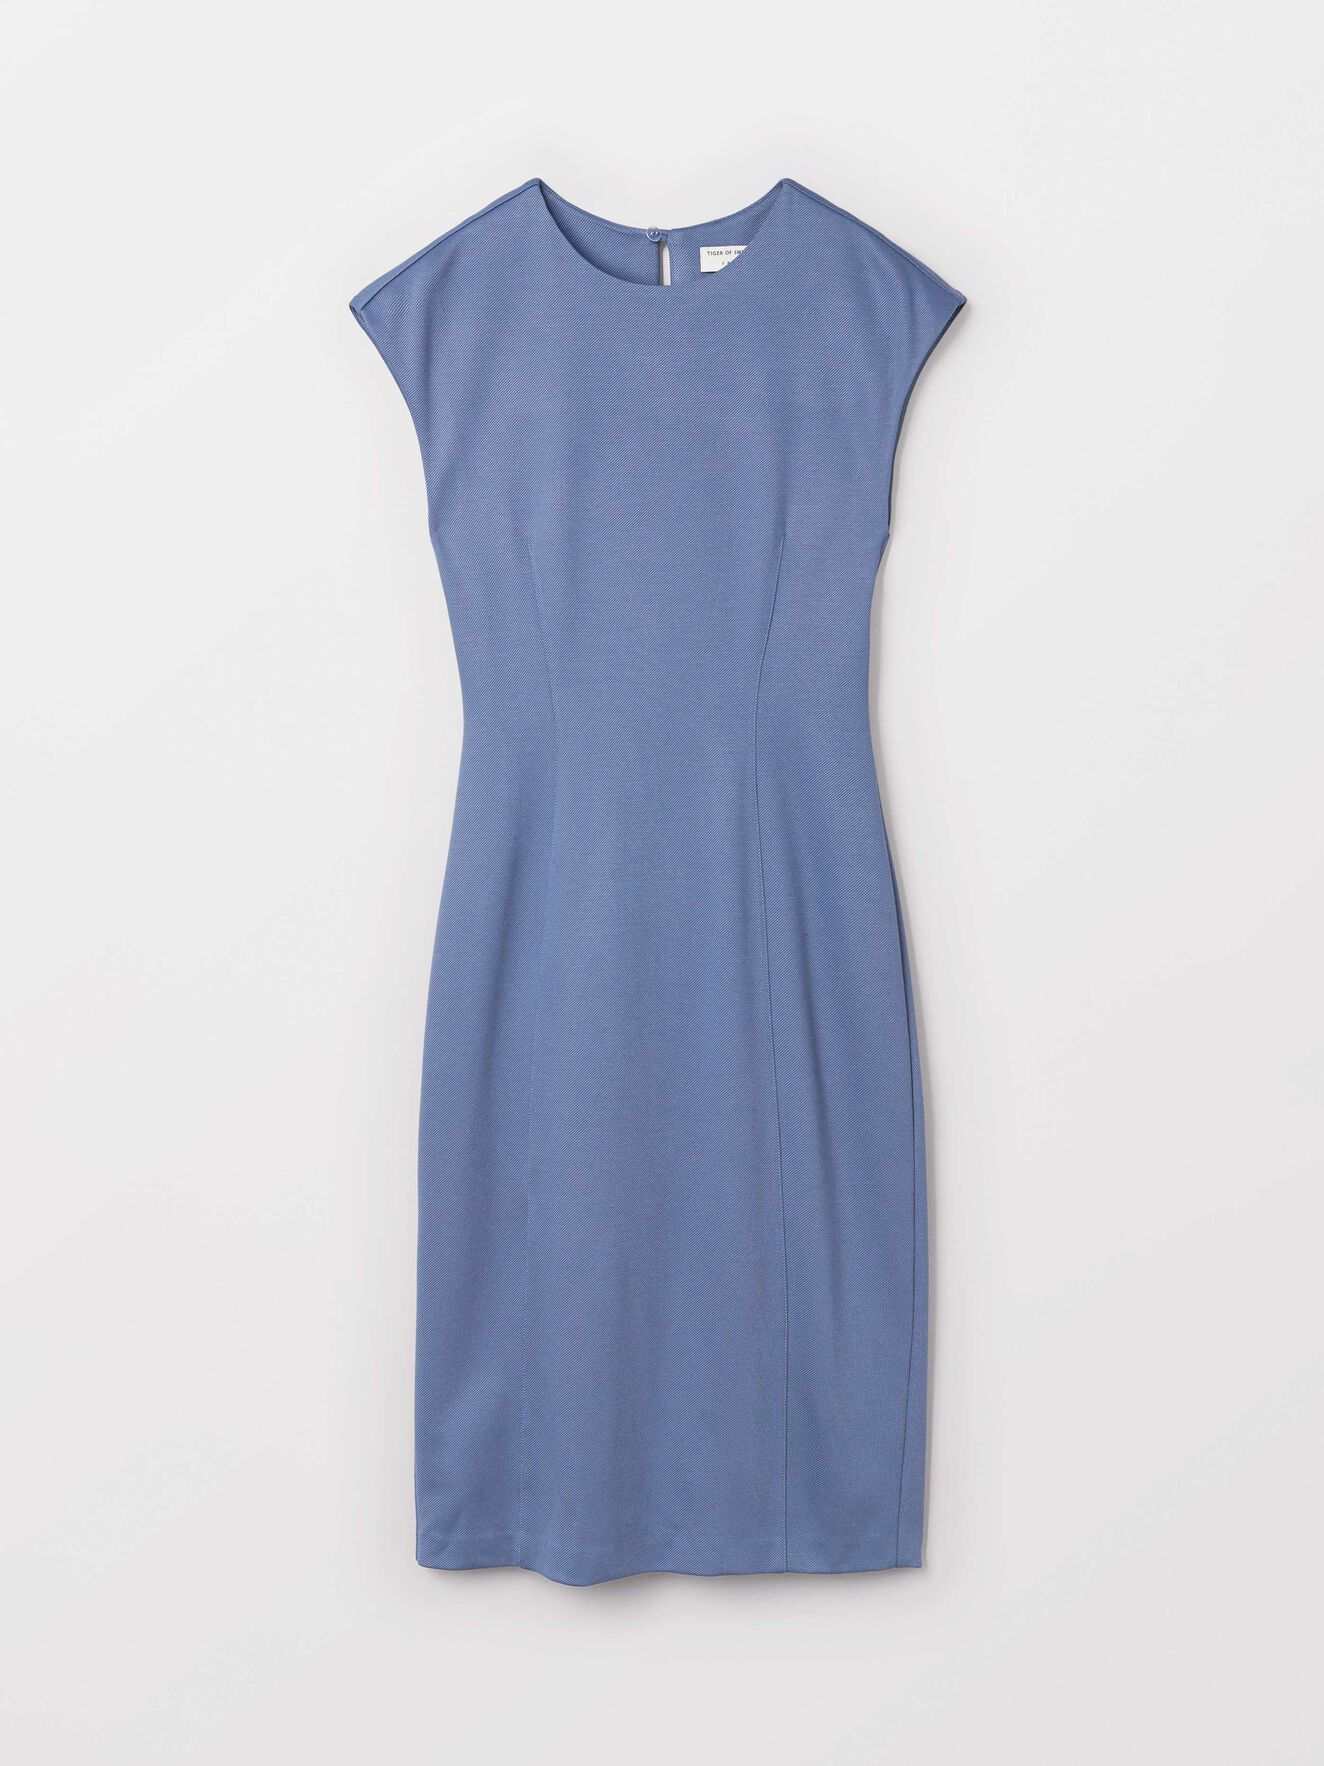 Cady 2S Dress in Soft blue from Tiger of Sweden